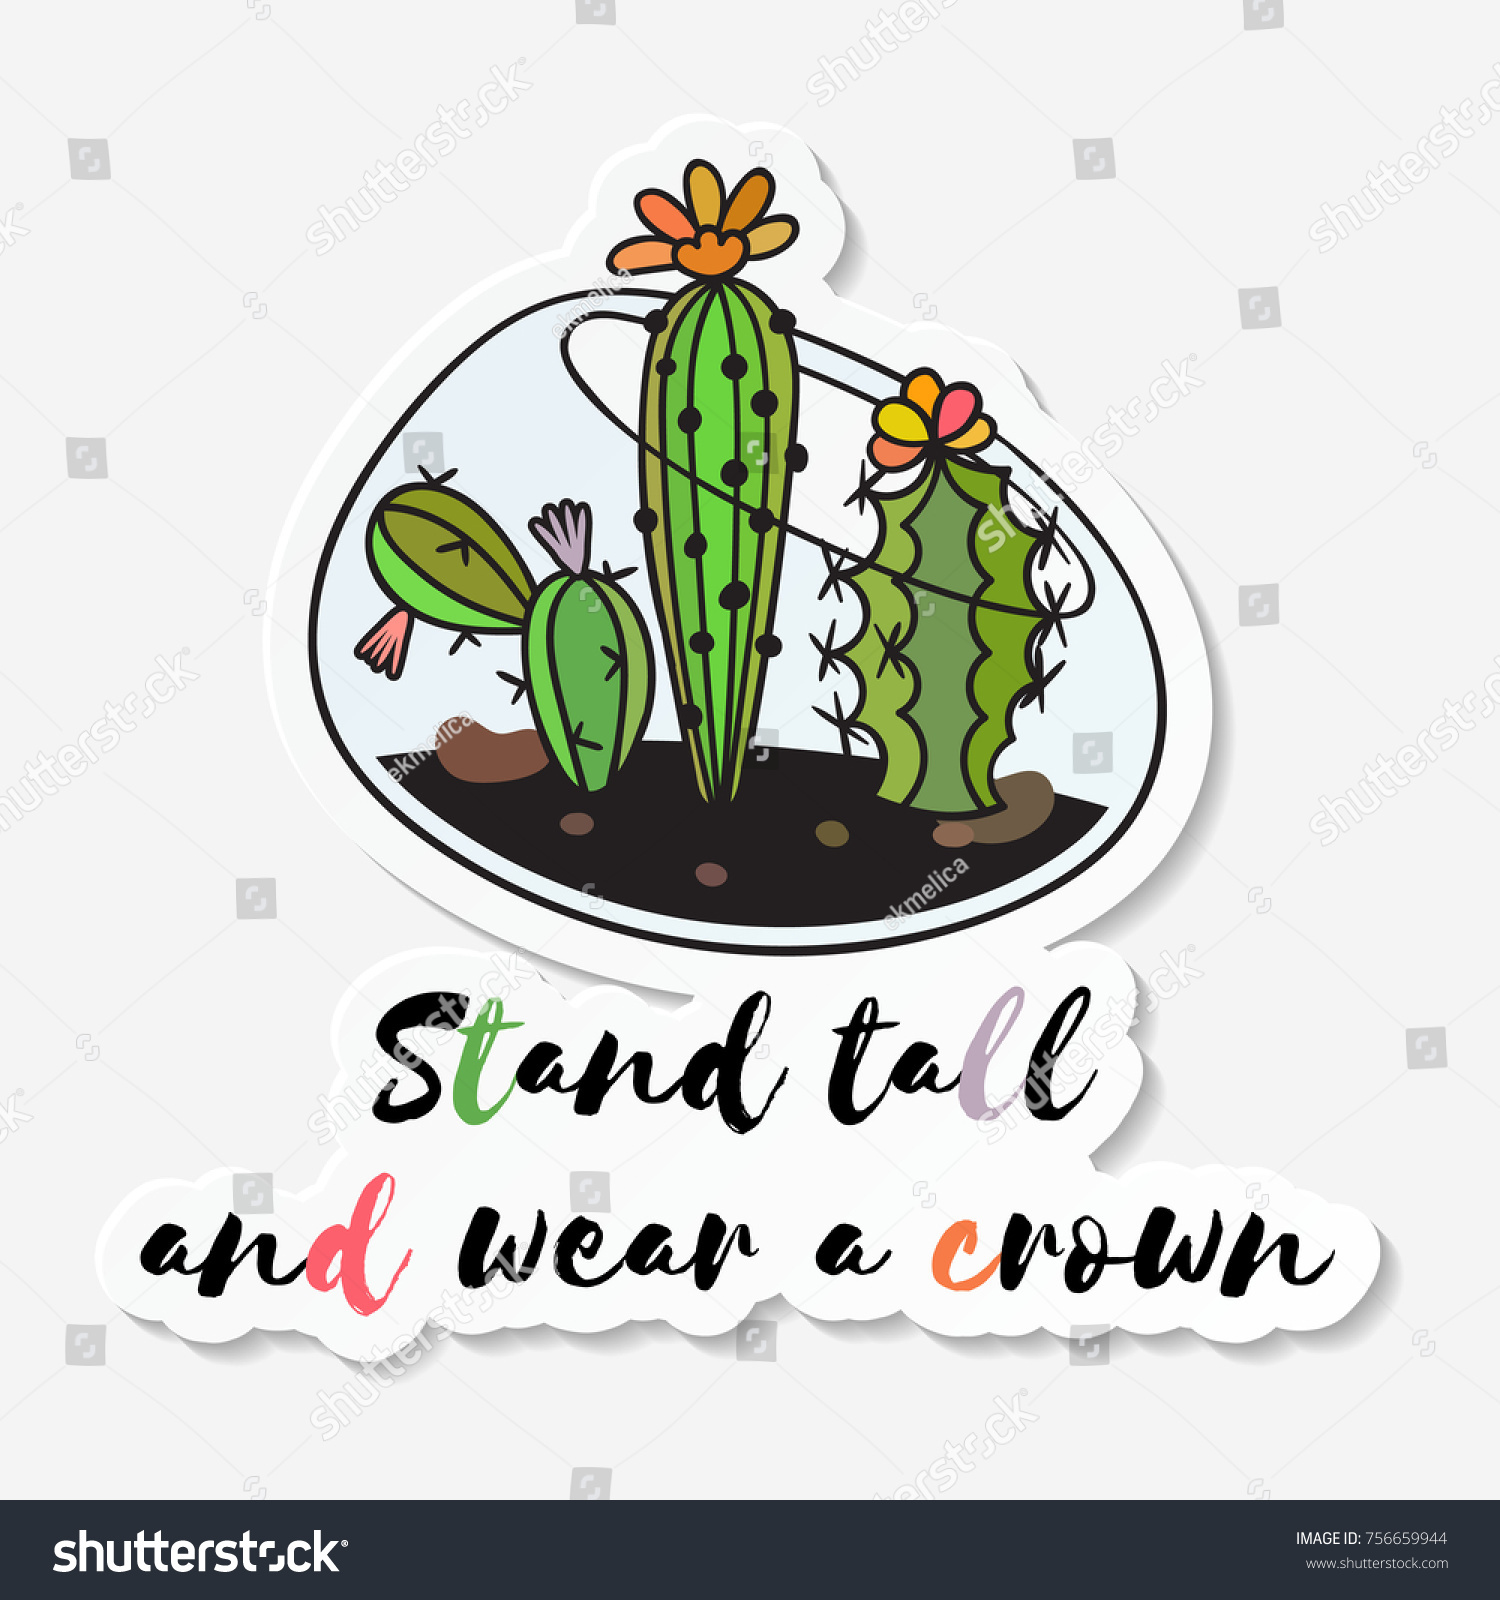 Sticker cactuses terrarium inscription stand tall stock vector sticker with cactuses in terrarium with the inscription stand tall and wear a crown colored izmirmasajfo